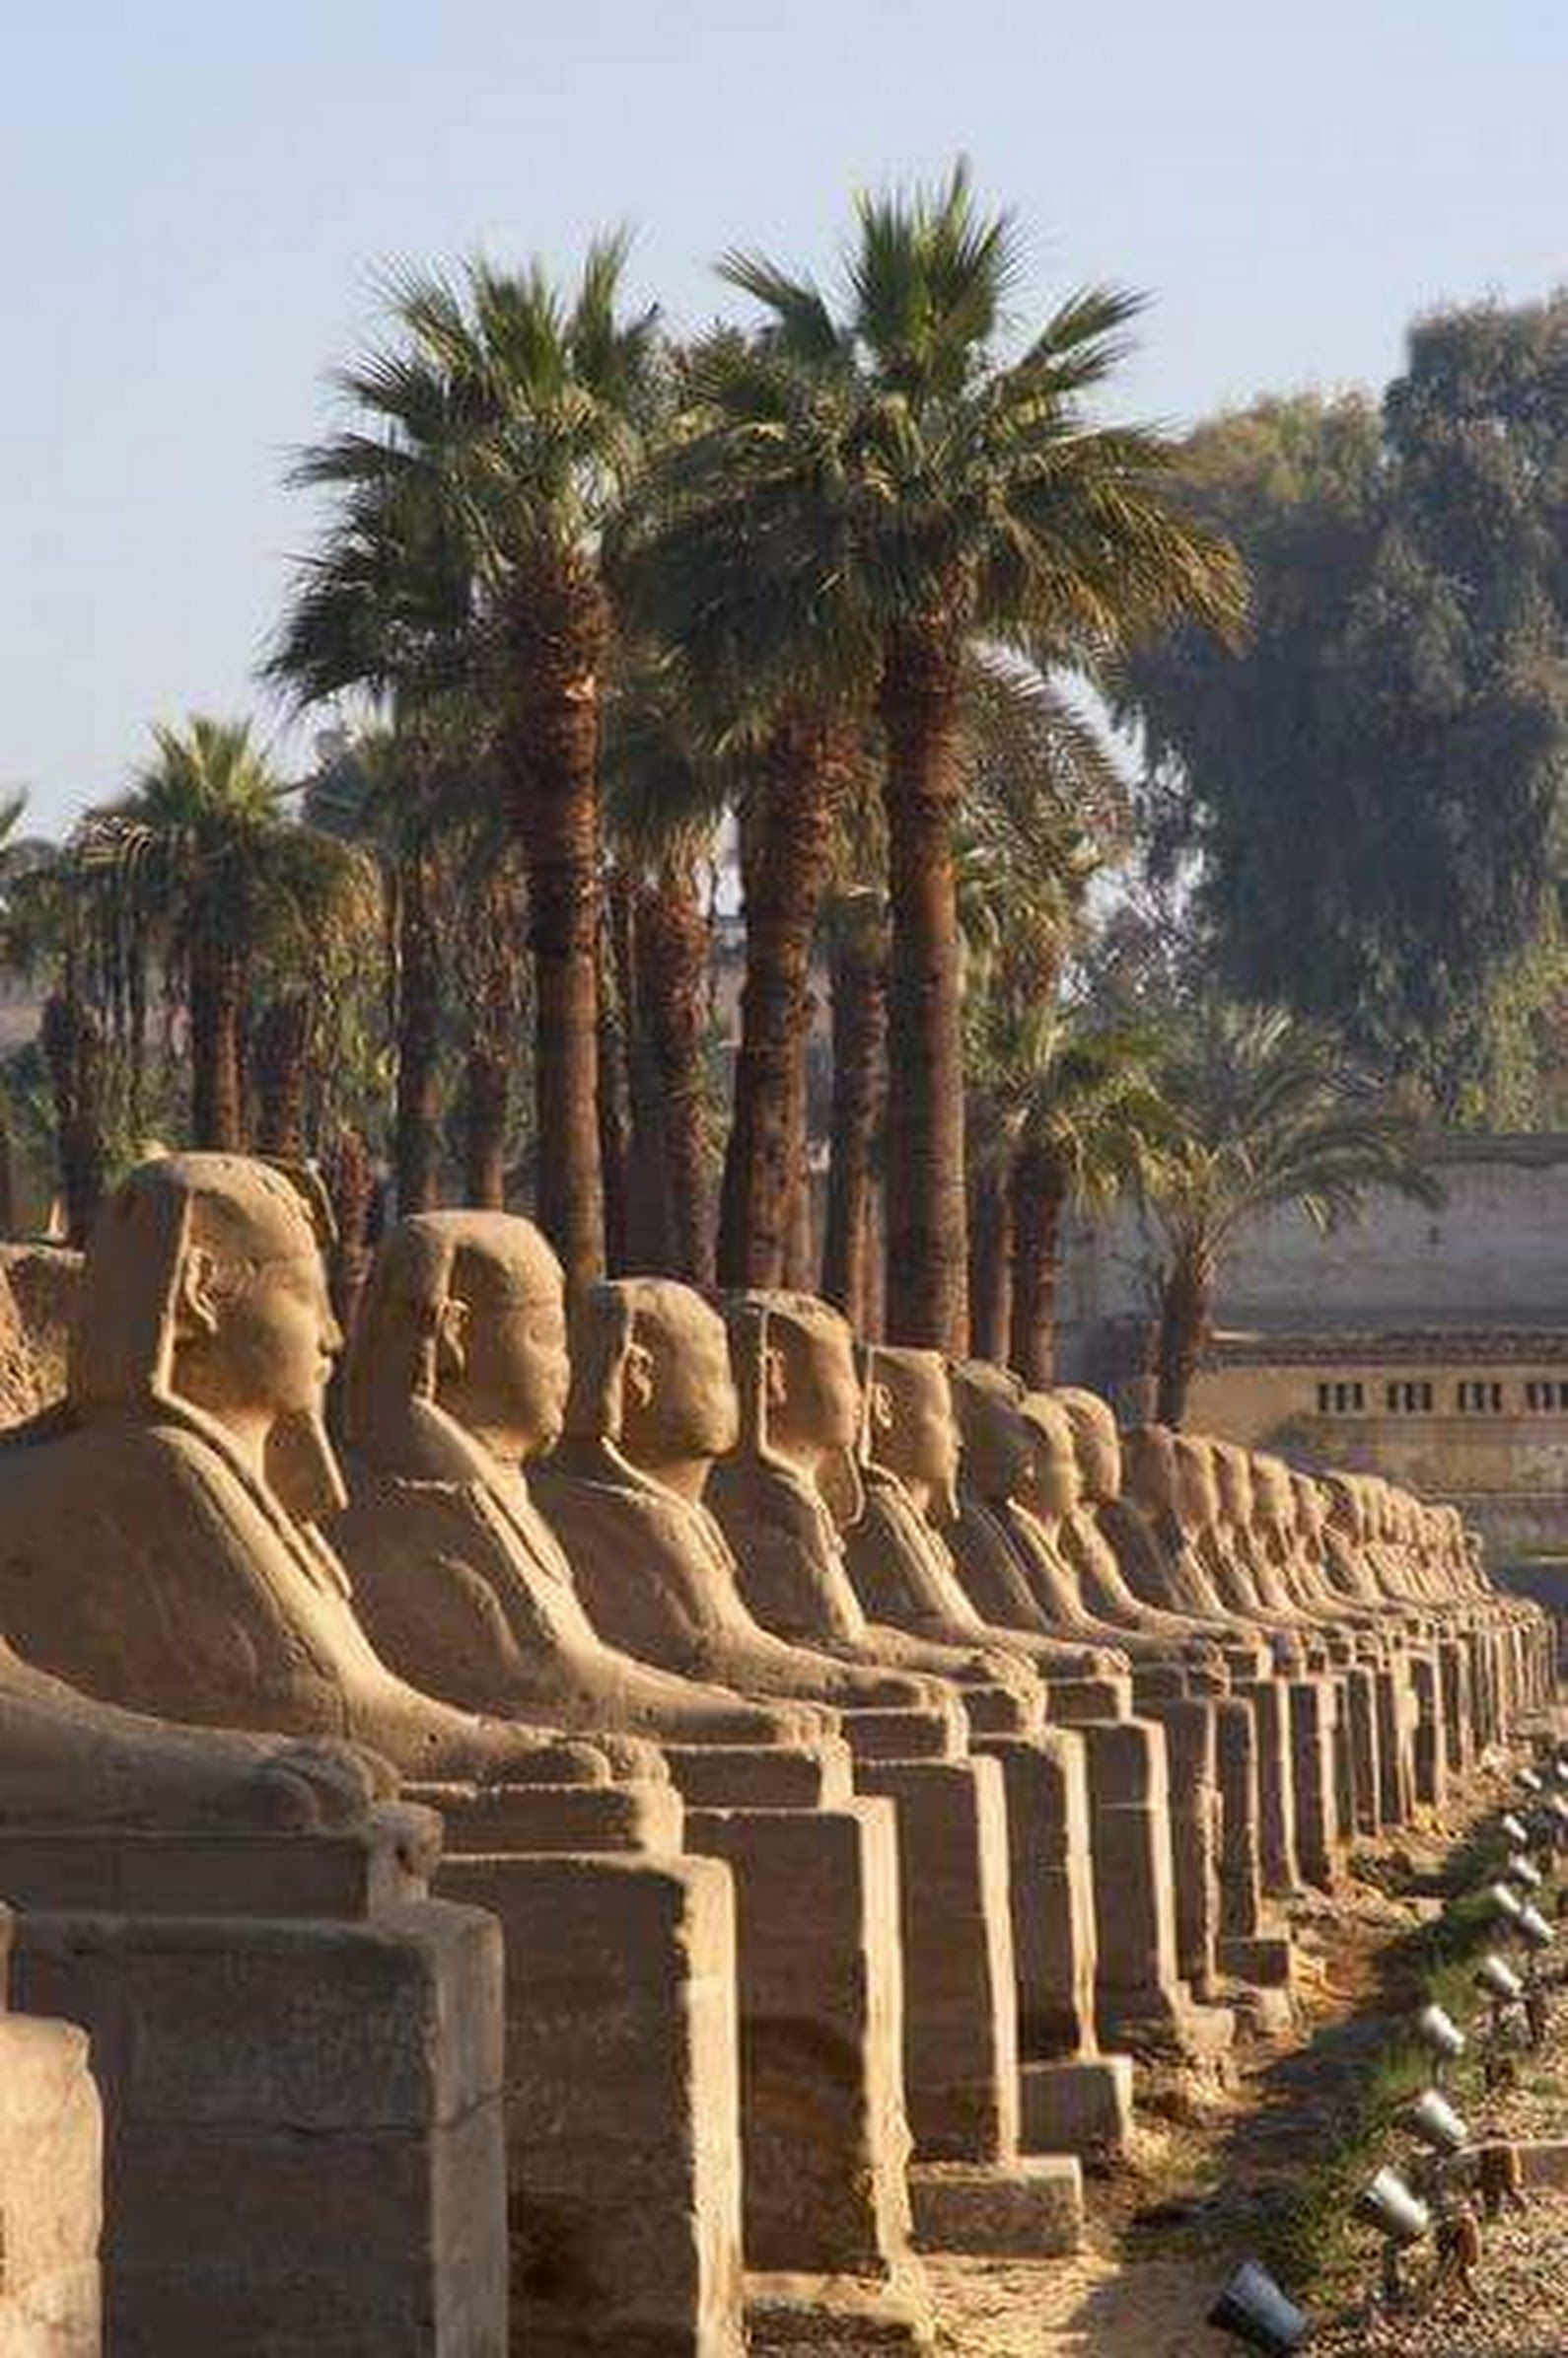 Greetings from the sphinxesavenue karnak temples luxor greetings from the sphinxesavenue karnak temples luxor peace kristyandbryce Choice Image